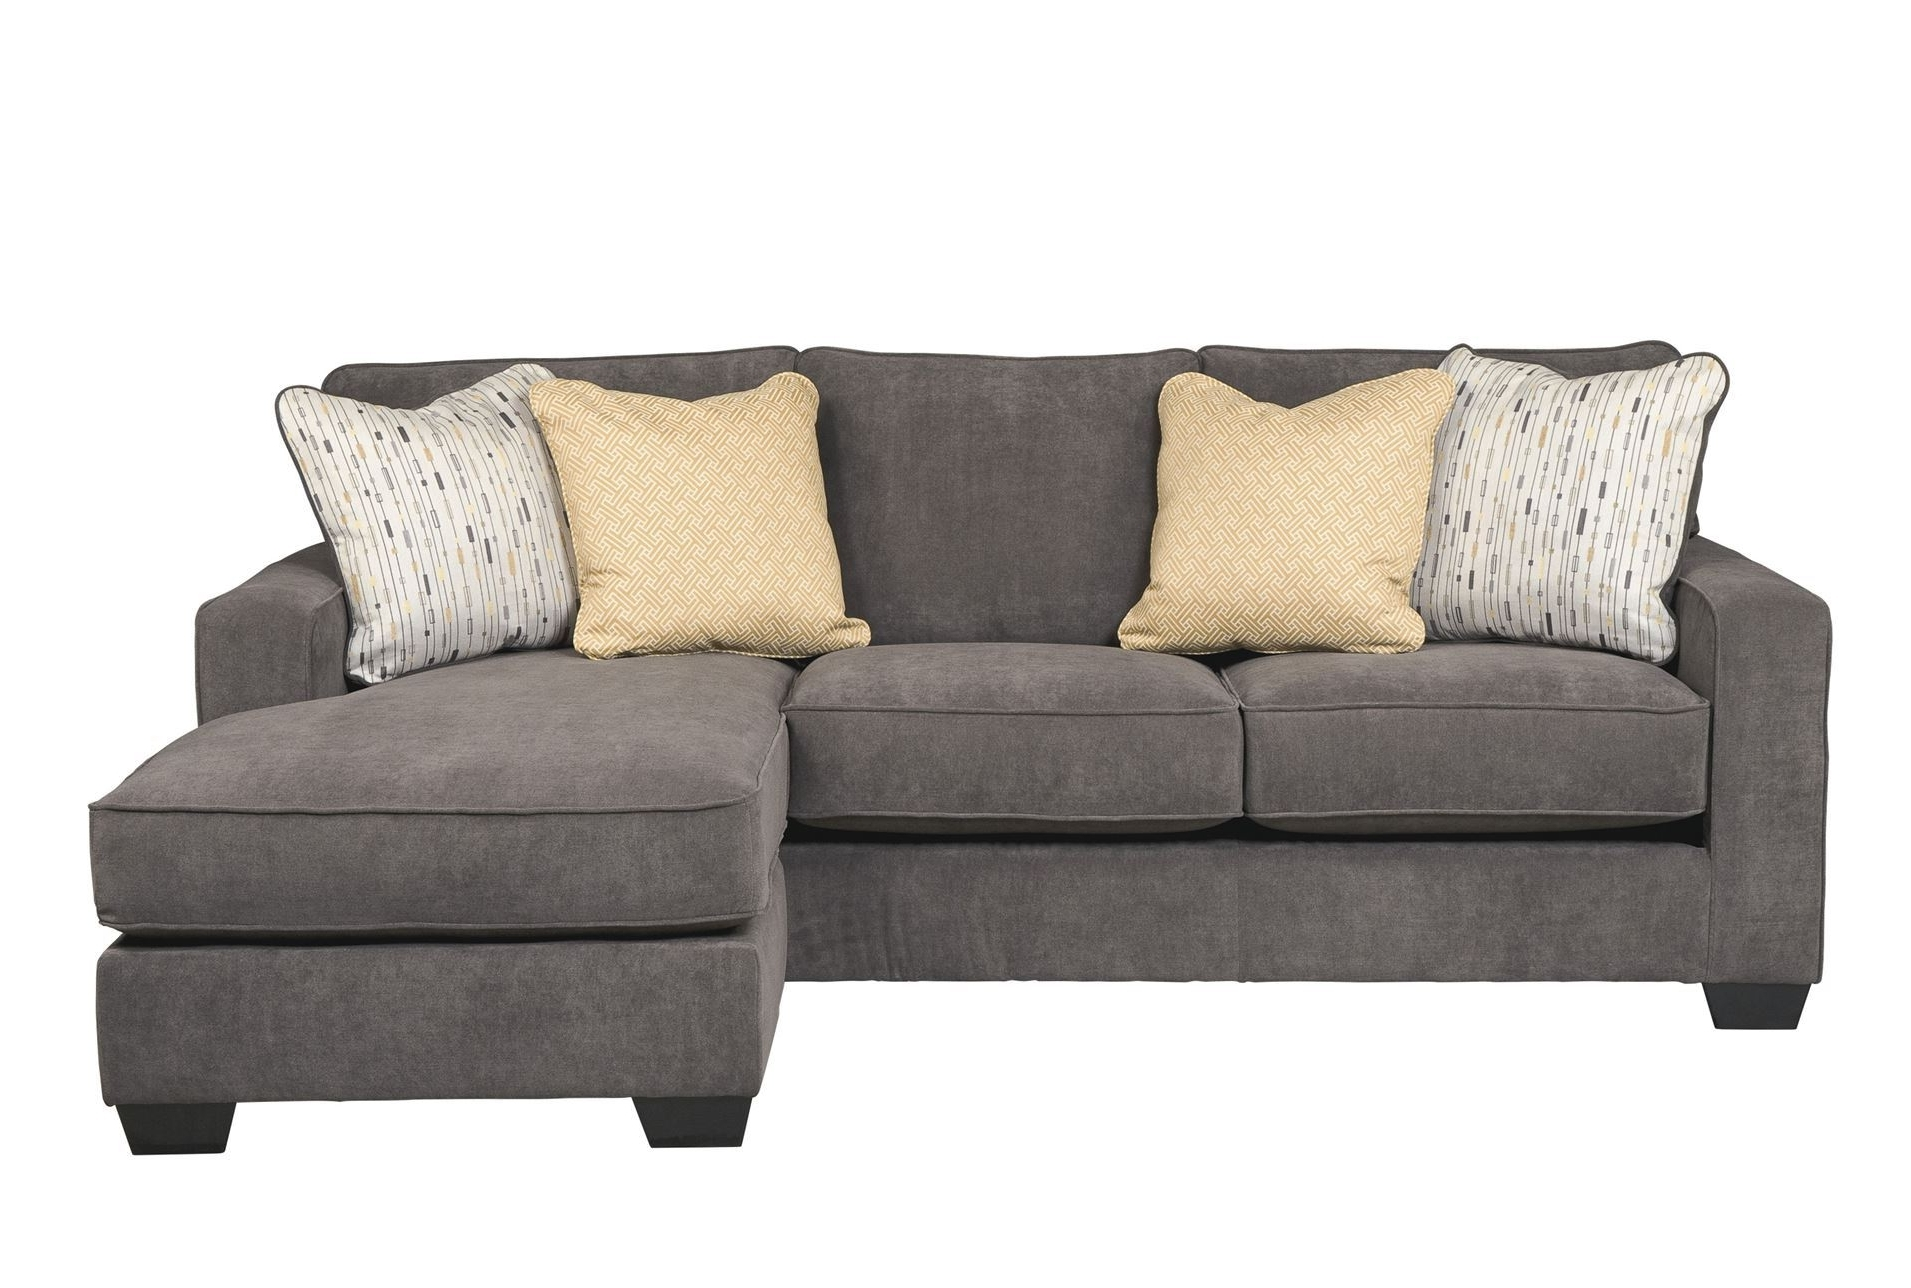 Sofa: Inspiring Small Chaise Sofa Small Space Living Room Inside Most Up To Date Small Sofa Chaises (View 11 of 15)